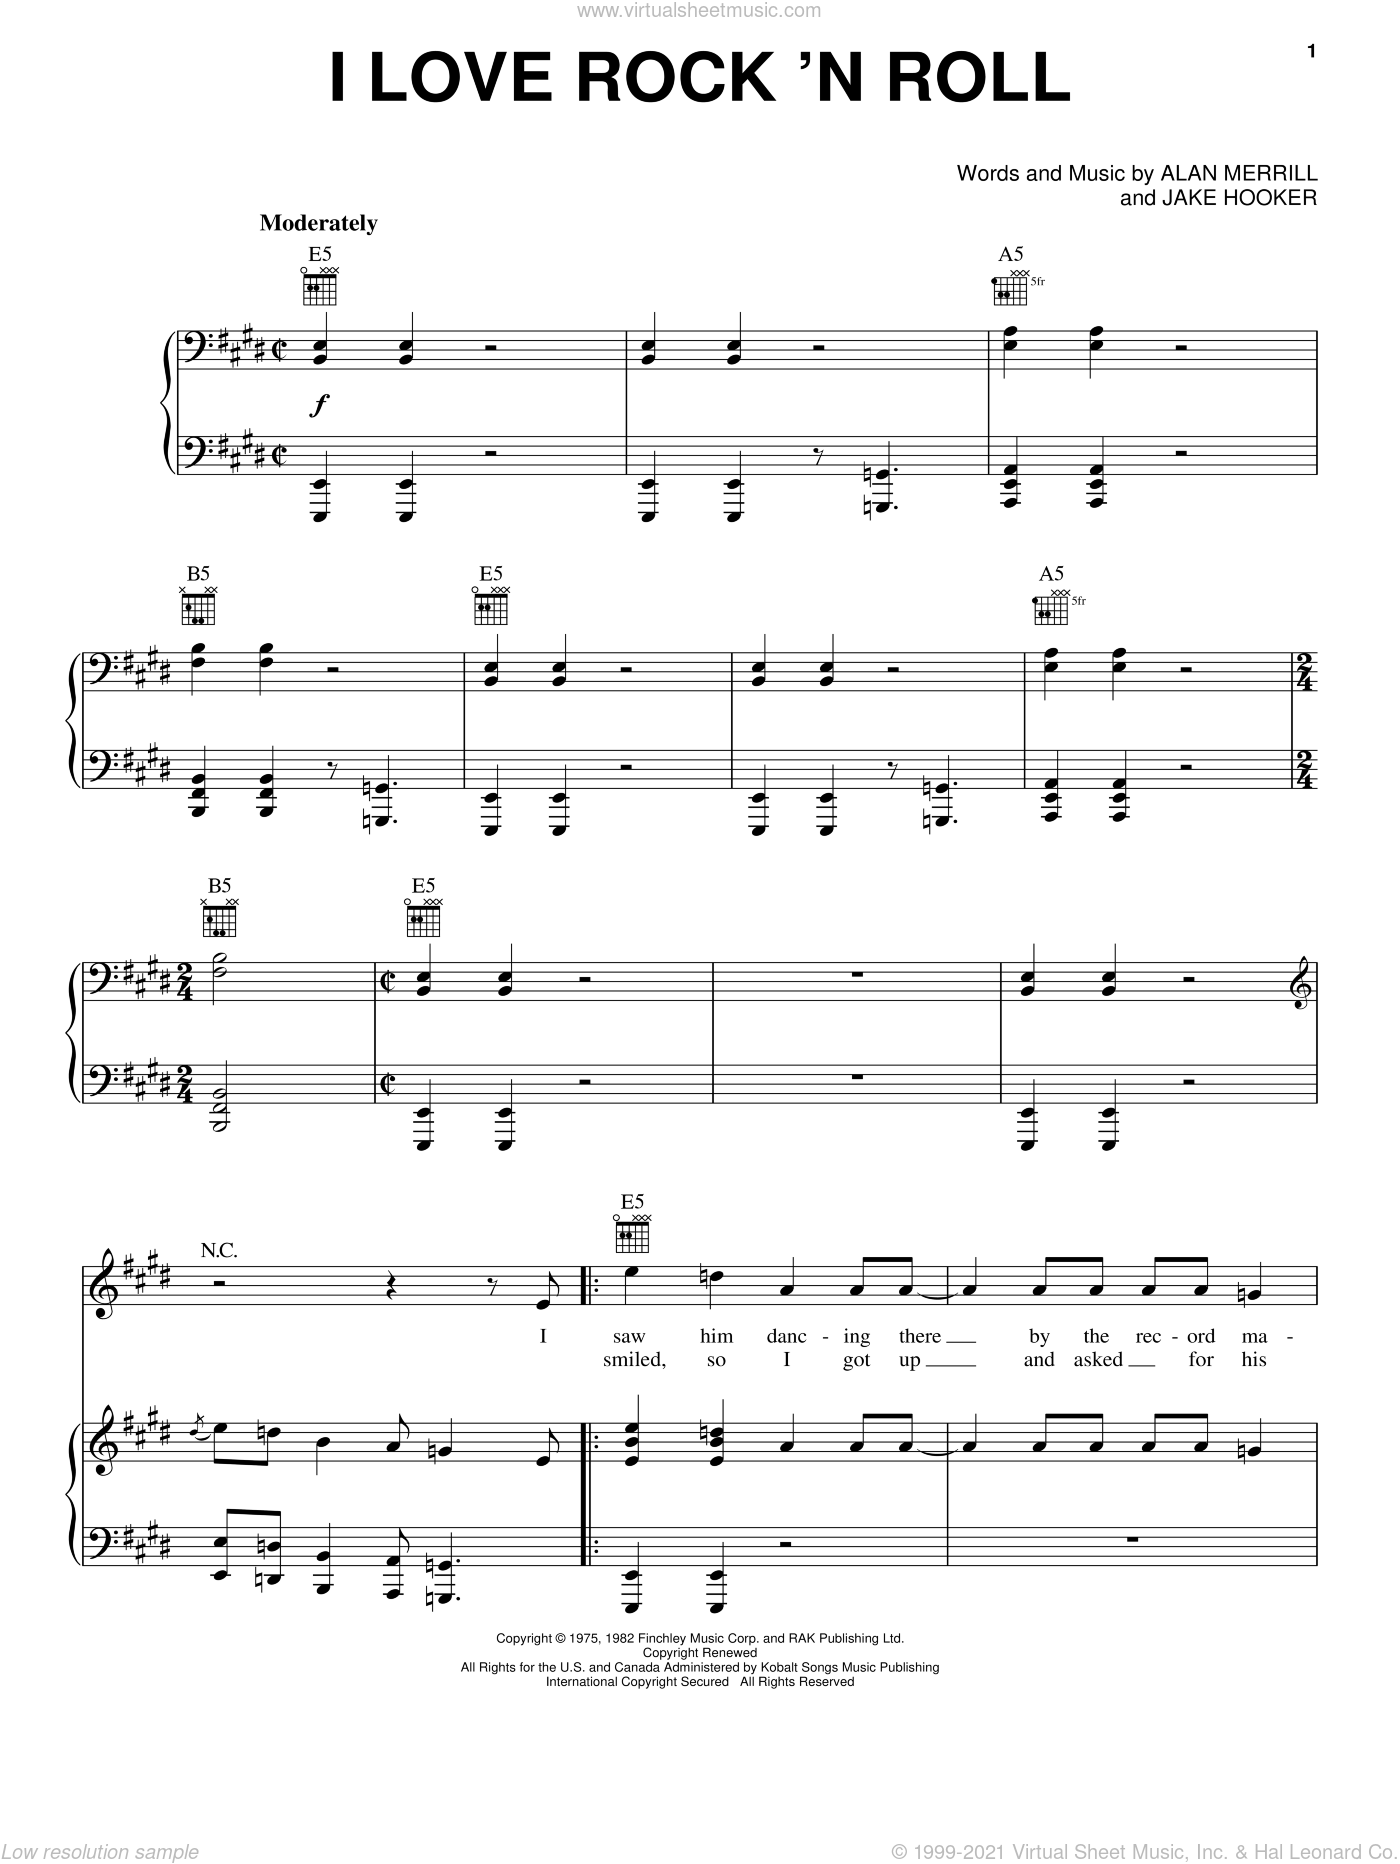 I Love Rock 'N Roll sheet music for voice, piano or guitar by Jake Hooker